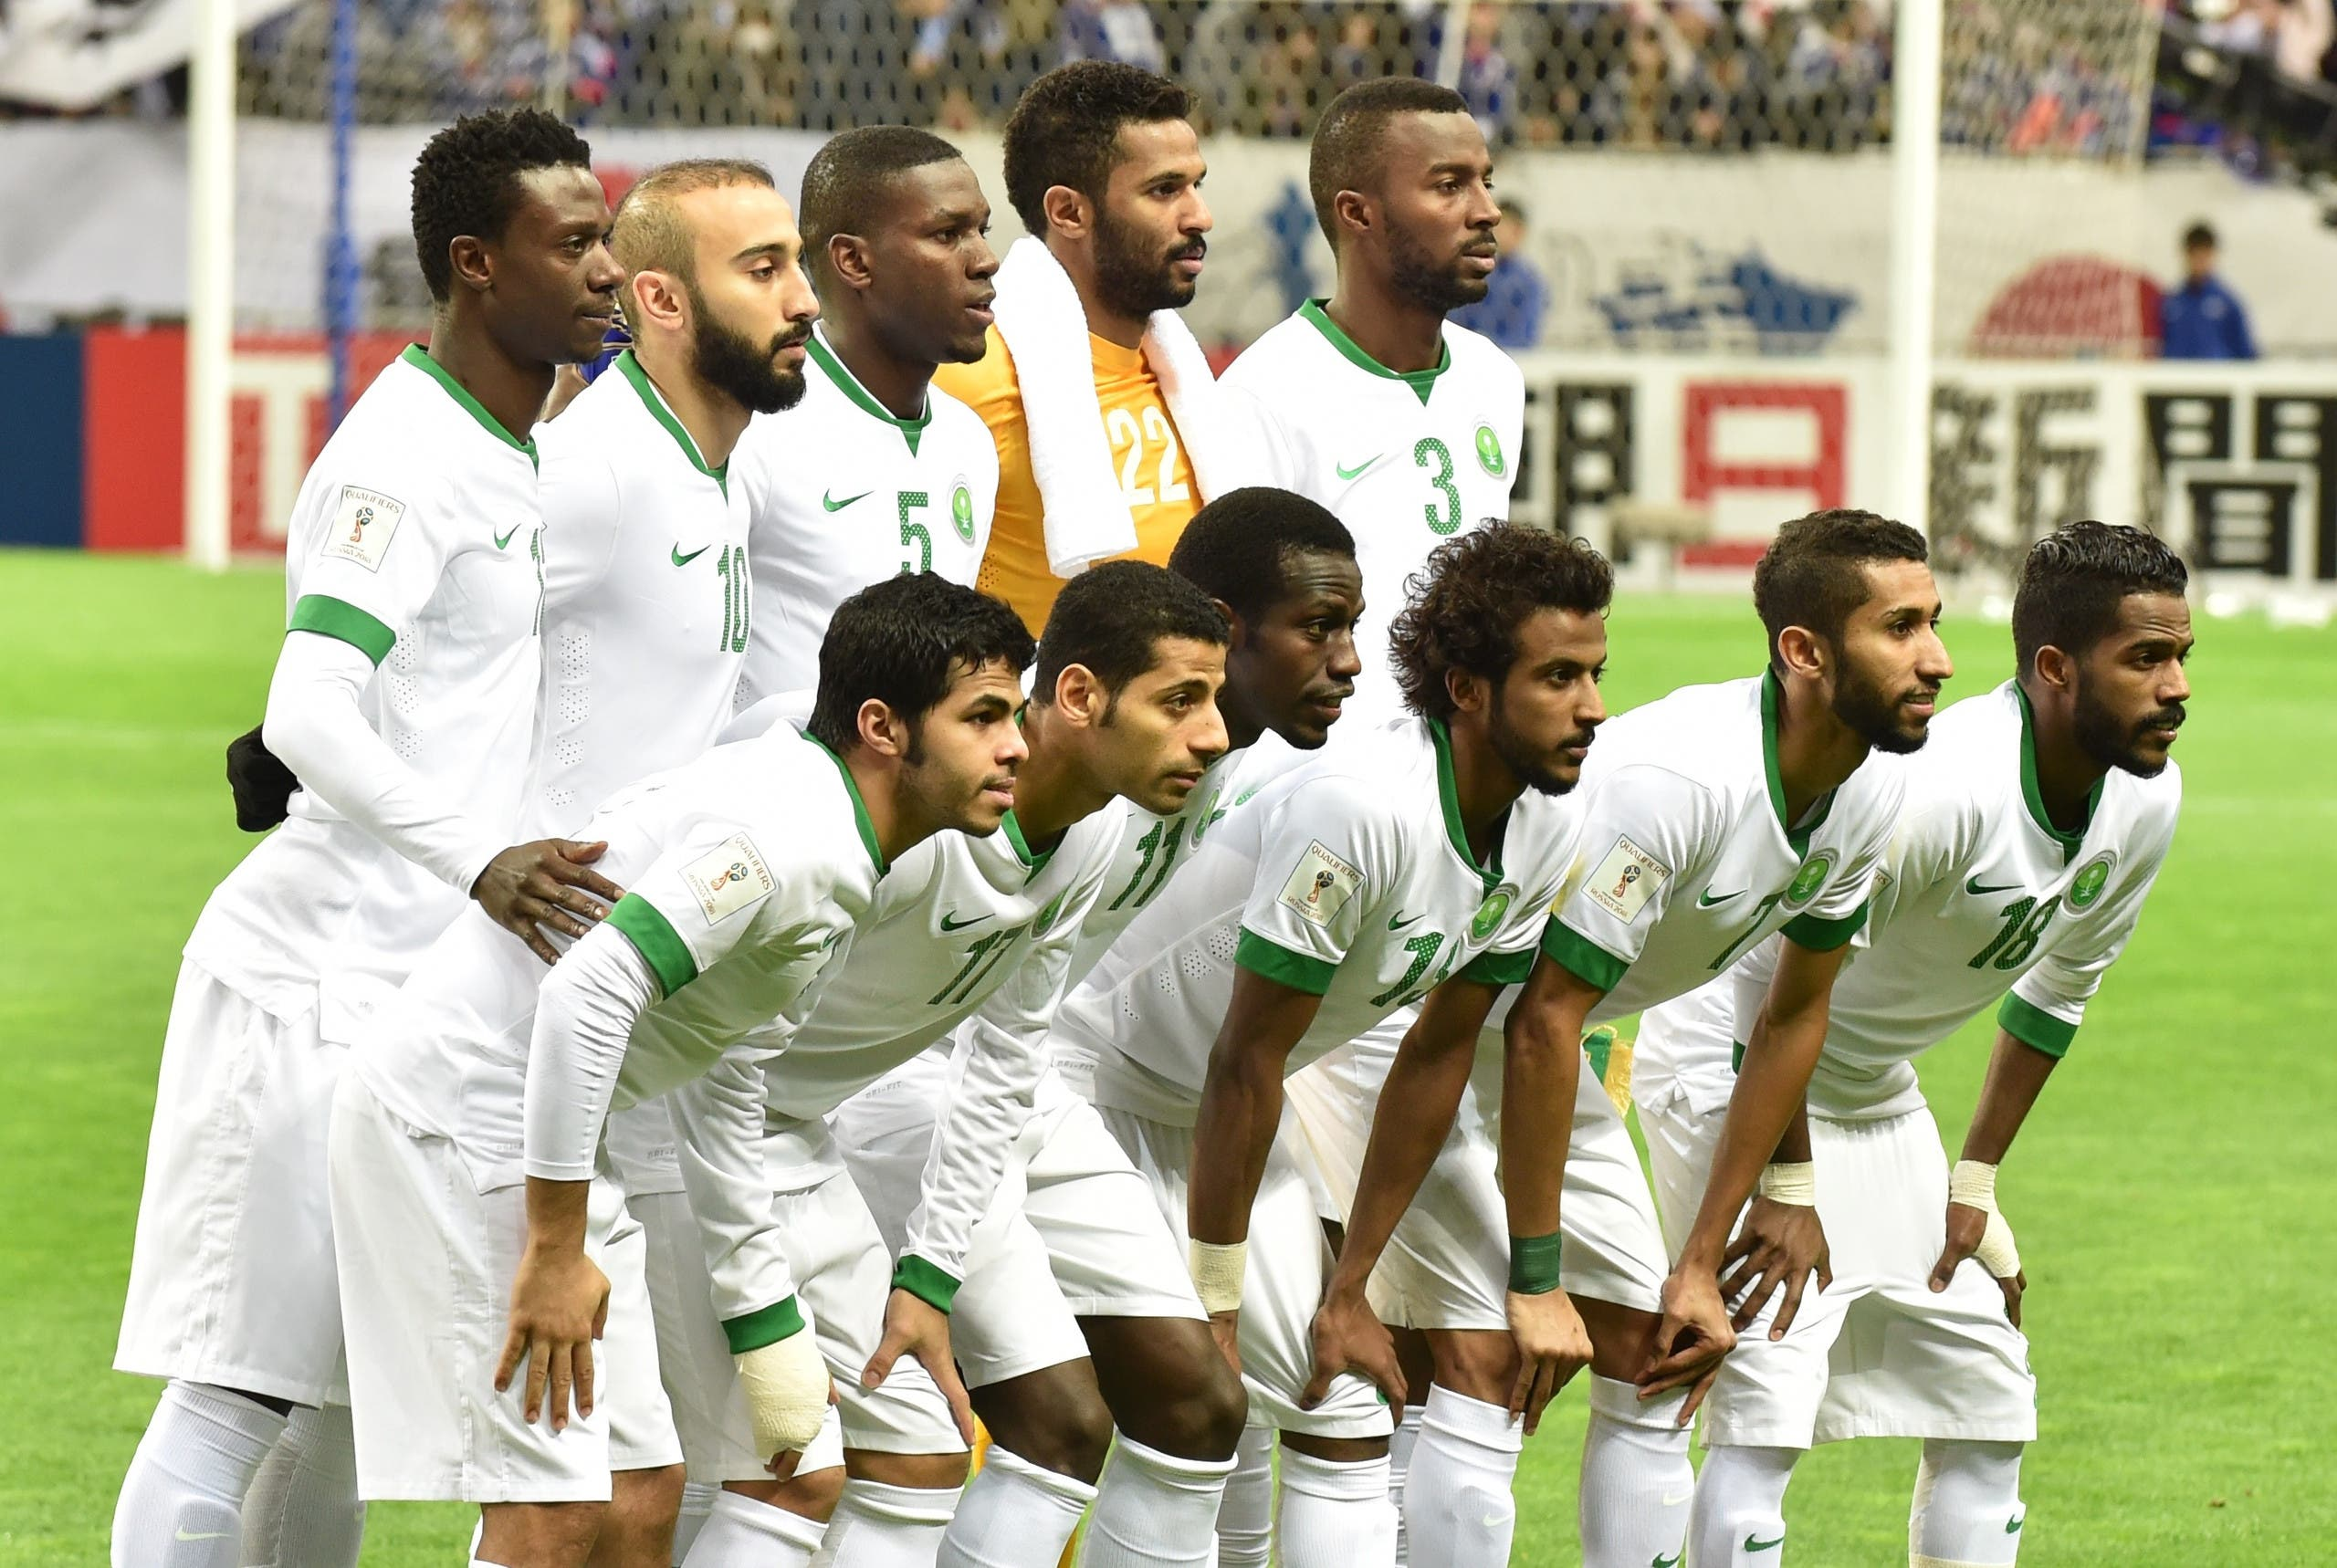 Saudi Arabia's starting players pose during a photo session prior to their football match in Group B of the 2018 World Cup Asian qualifier against Japan at Saitama Stadium in Saitama on November 15, 2016. (AP)